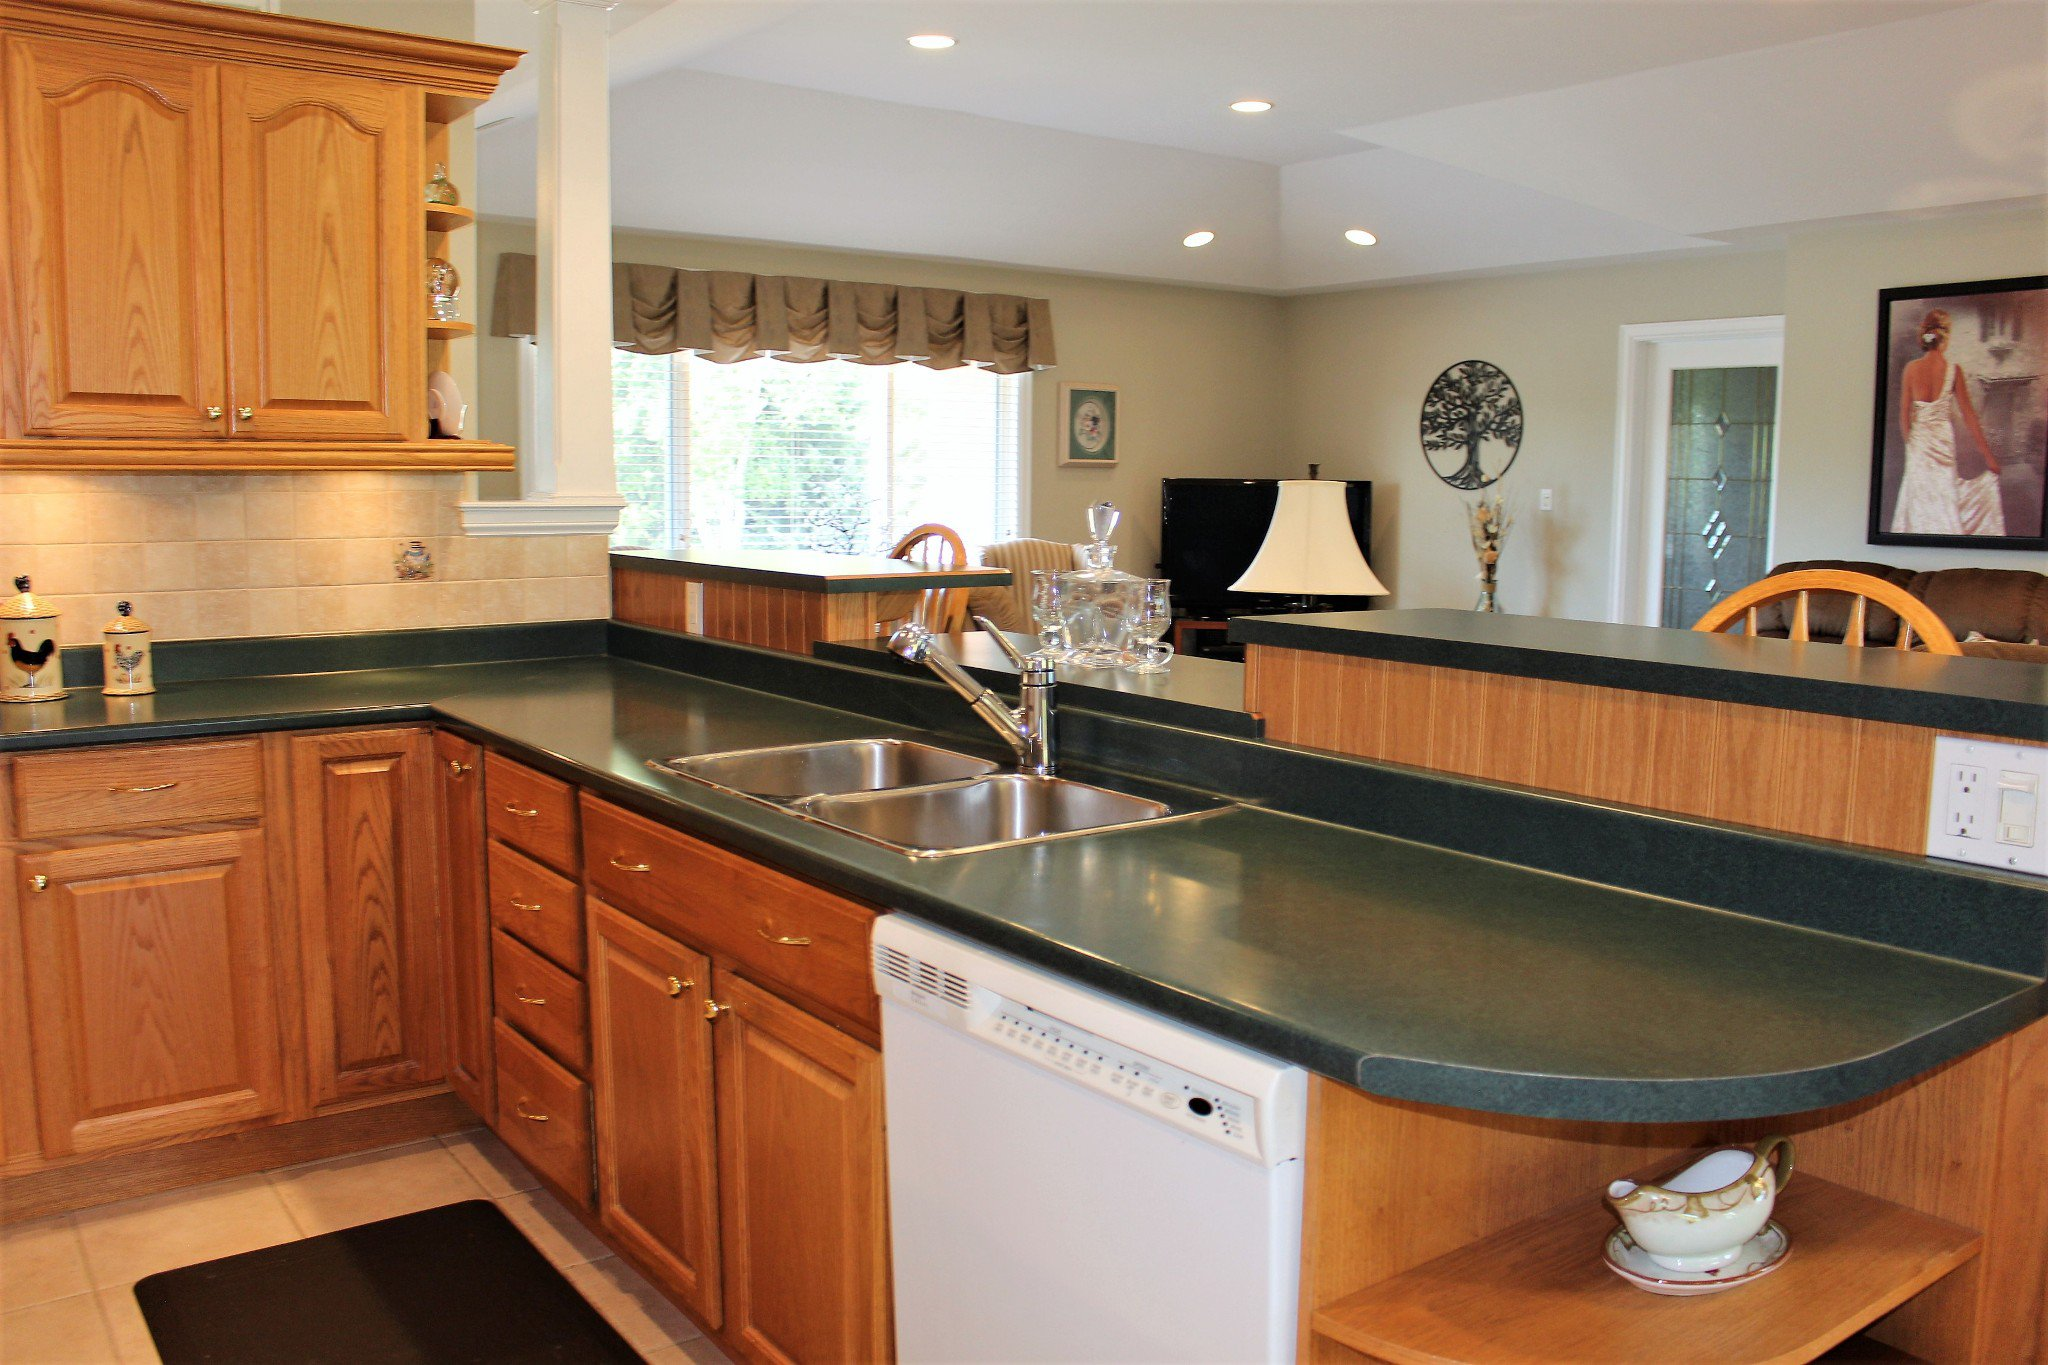 Photo 18: Photos: 159 Nawautin Drive in Grafton: Residential Detached for sale : MLS®# 40012652